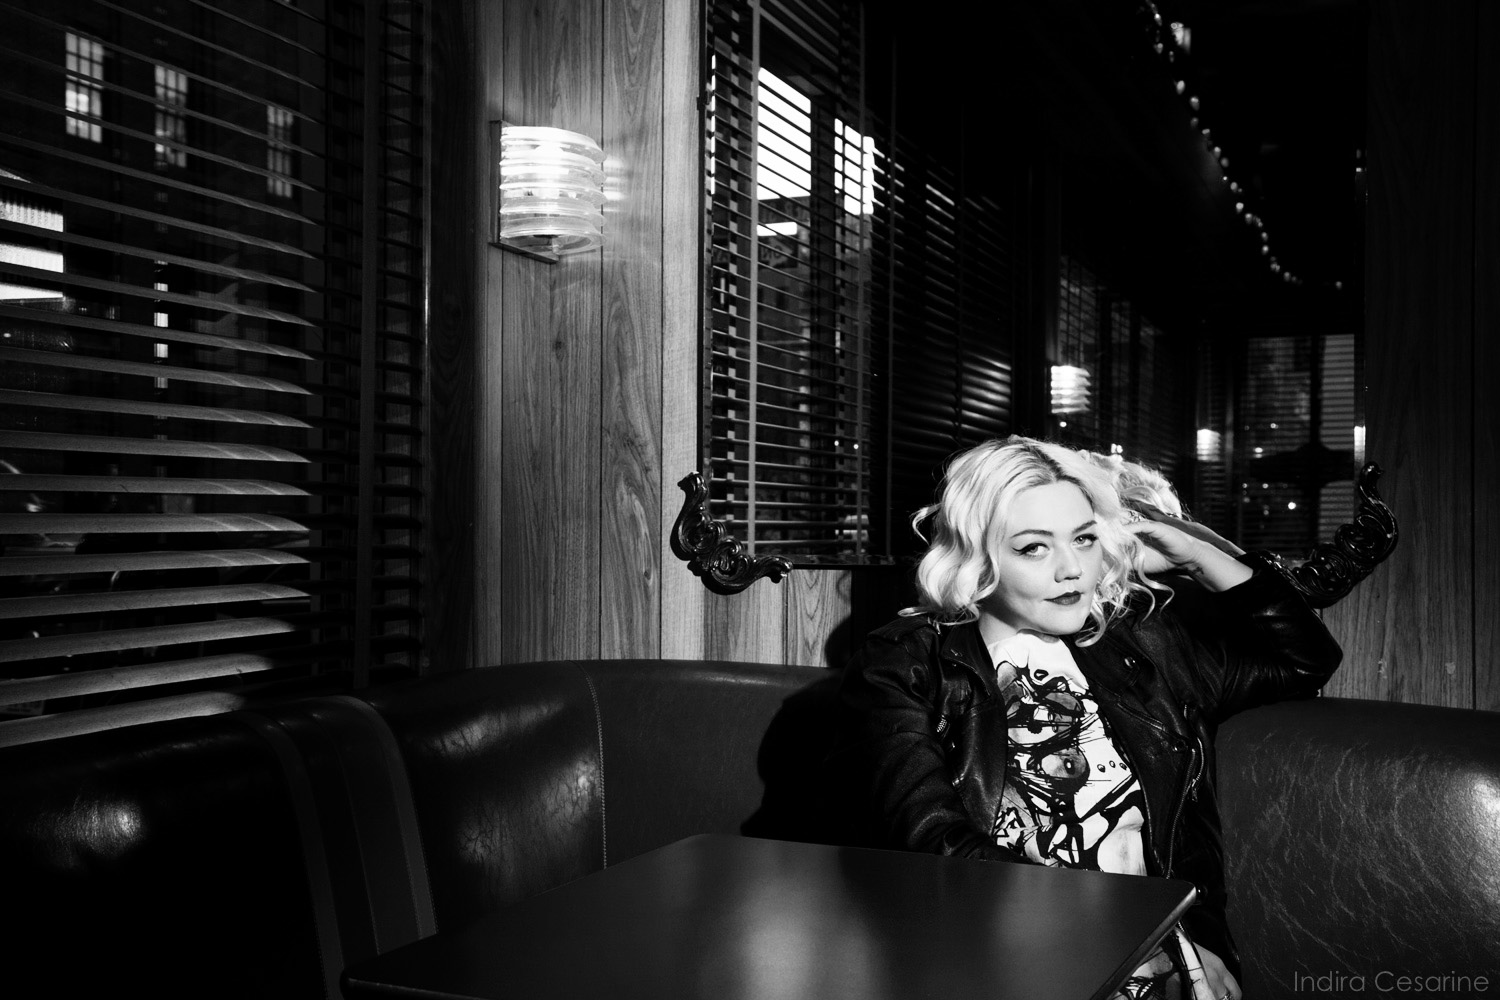 Elle-King-Photography-by-Indira-Cesarine-012-bw.jpg